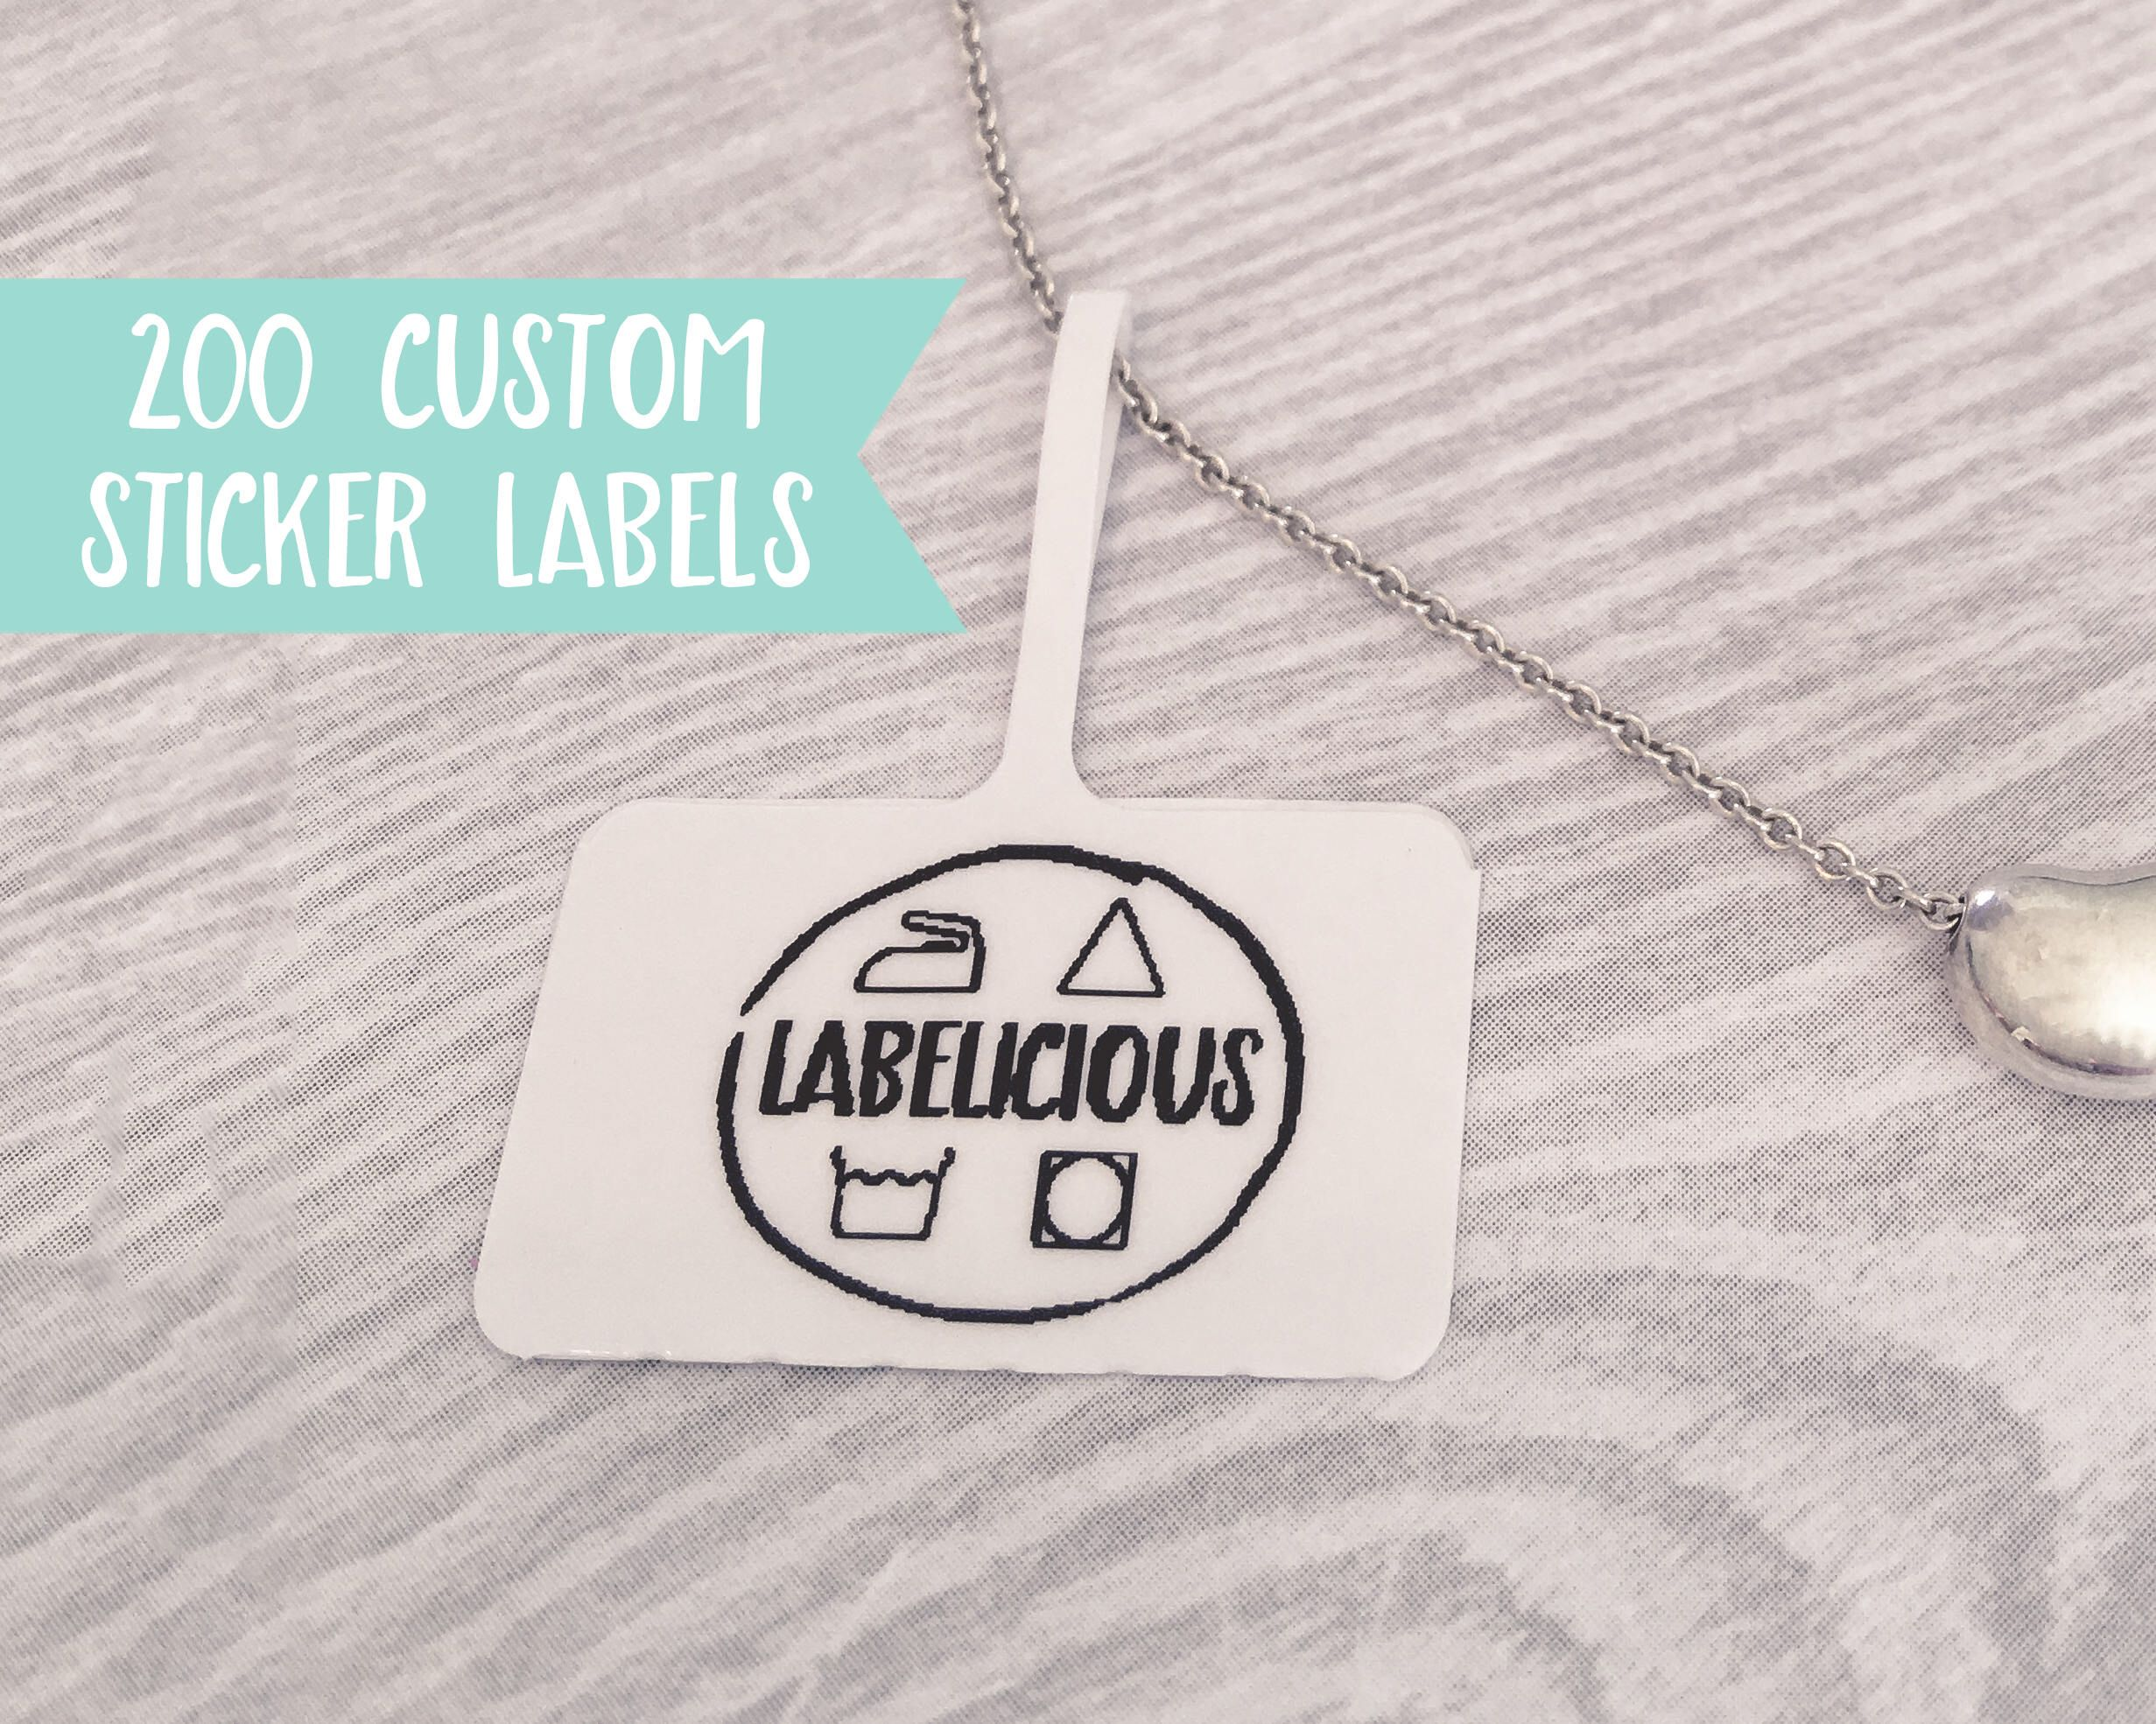 Qty 200 custom jewellery tag small custom label custom price tag custom